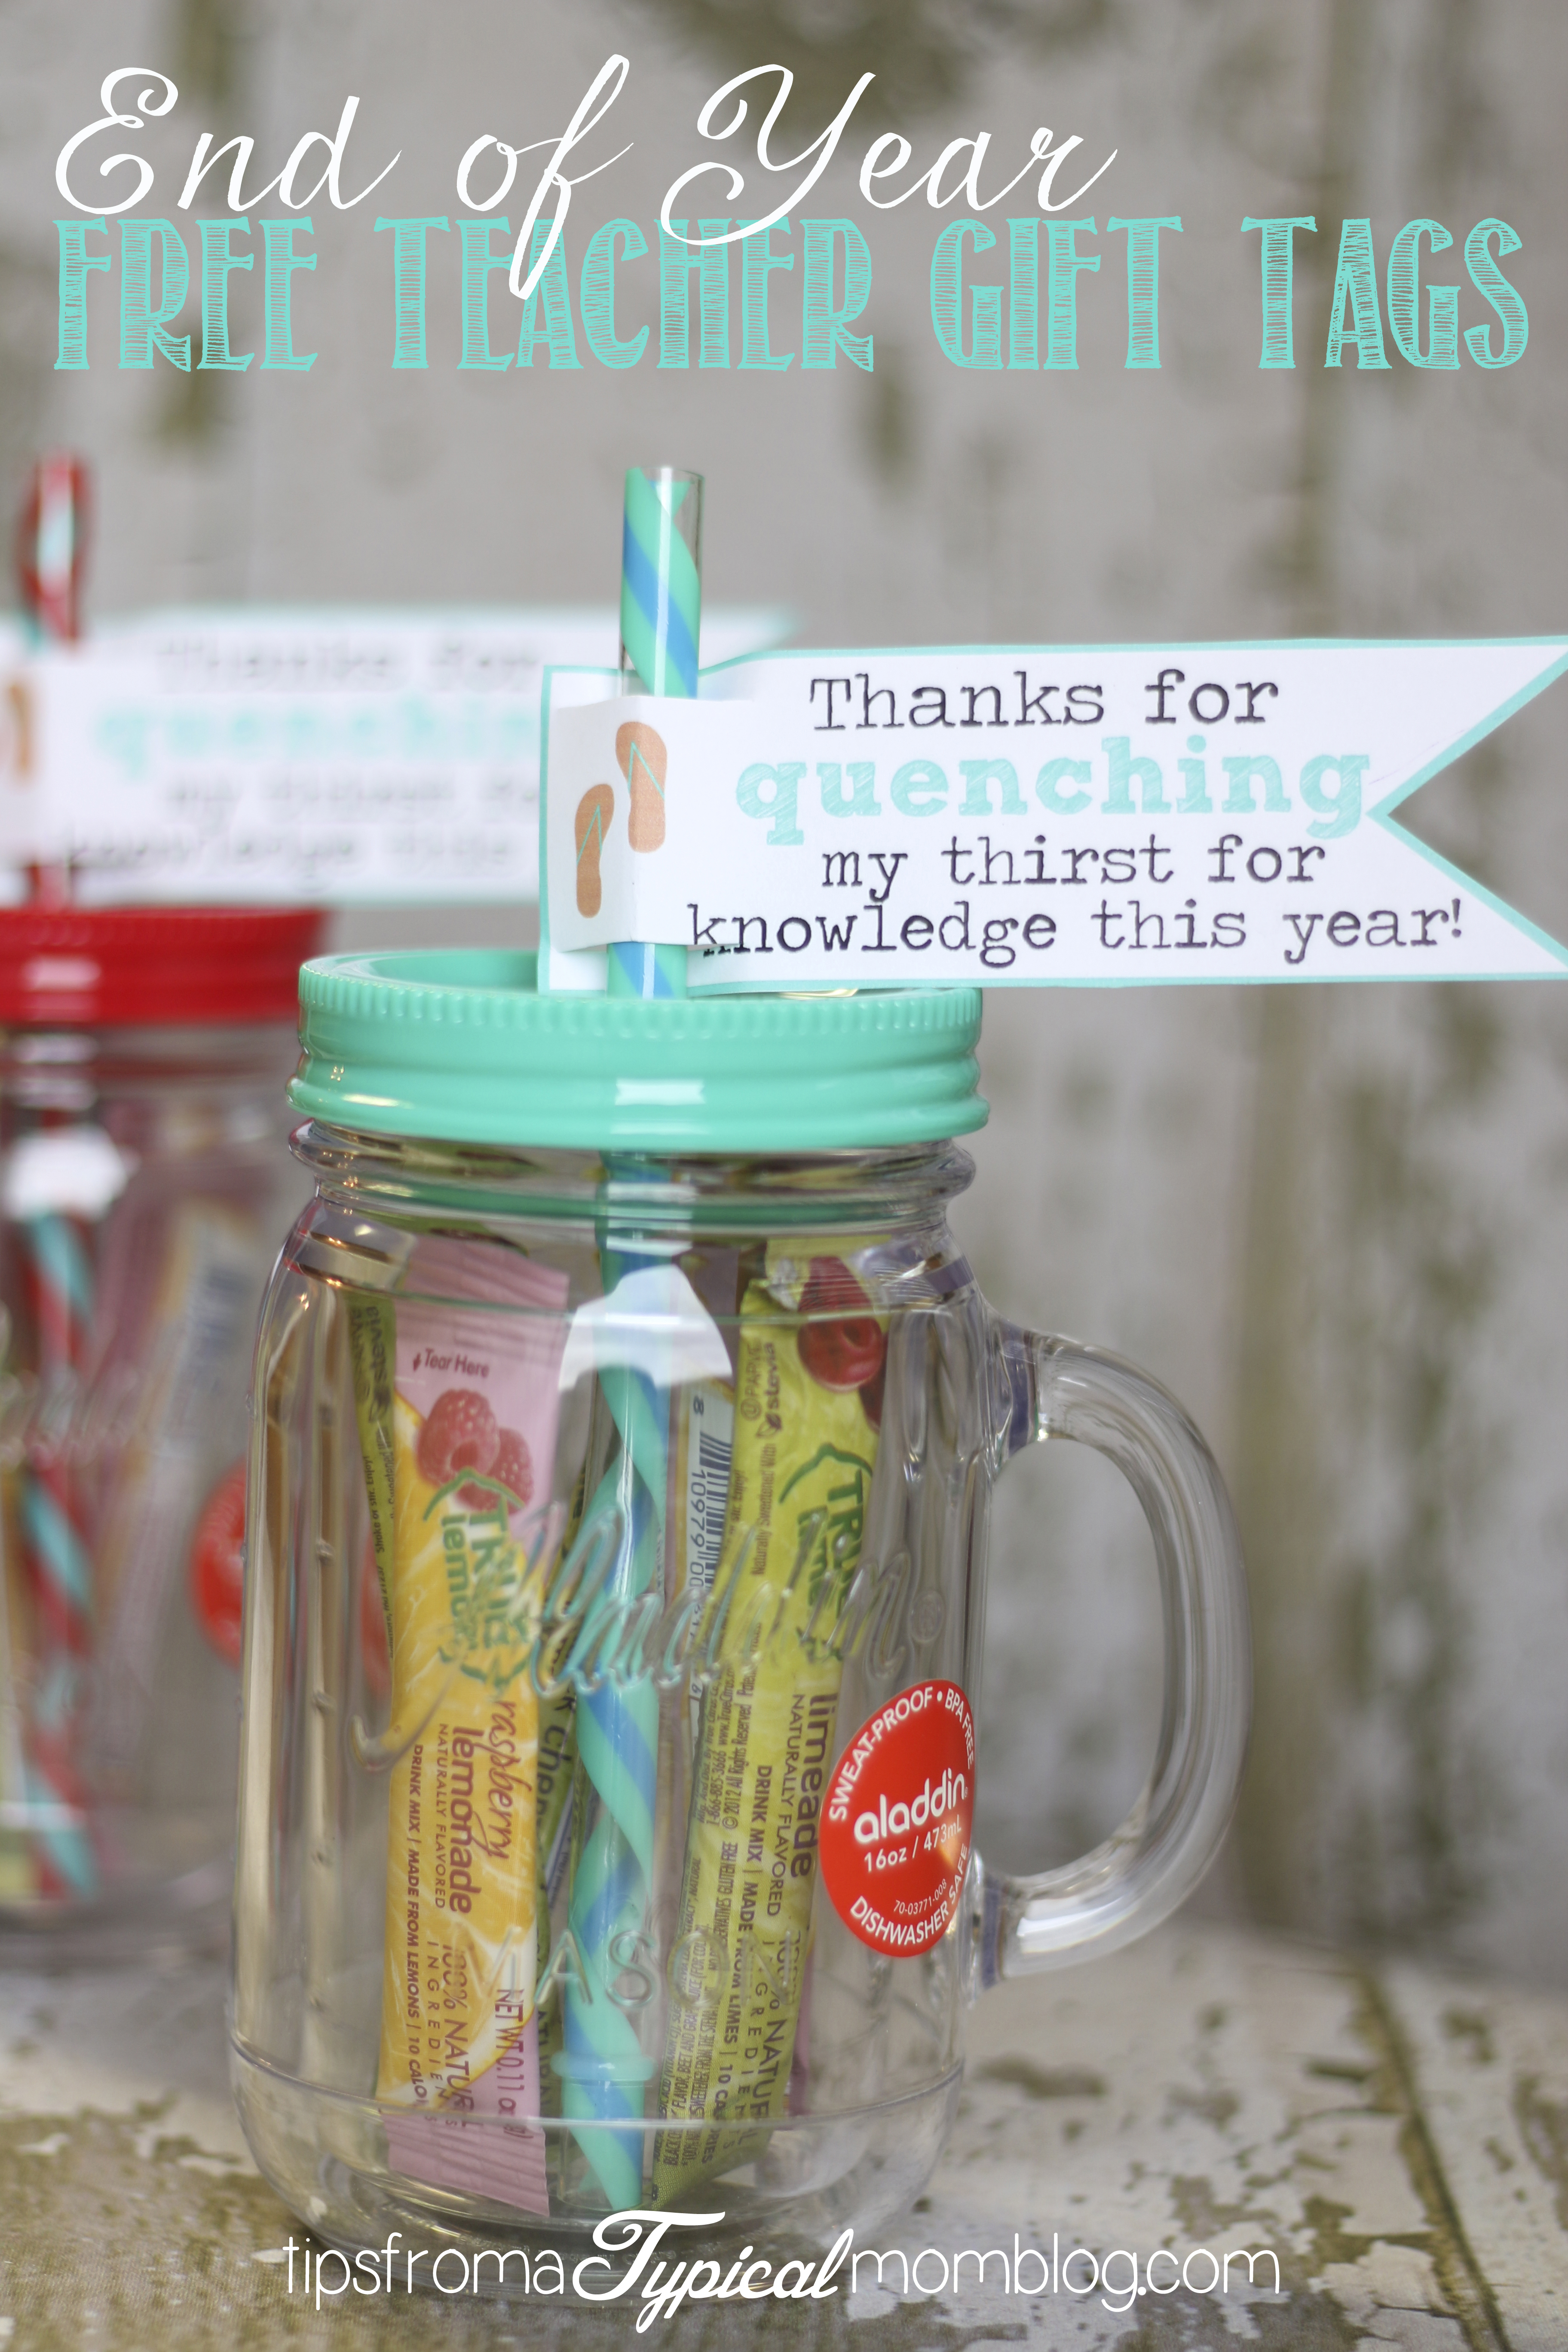 8 Images of The End Of Year Teacher Gift Printable Tags